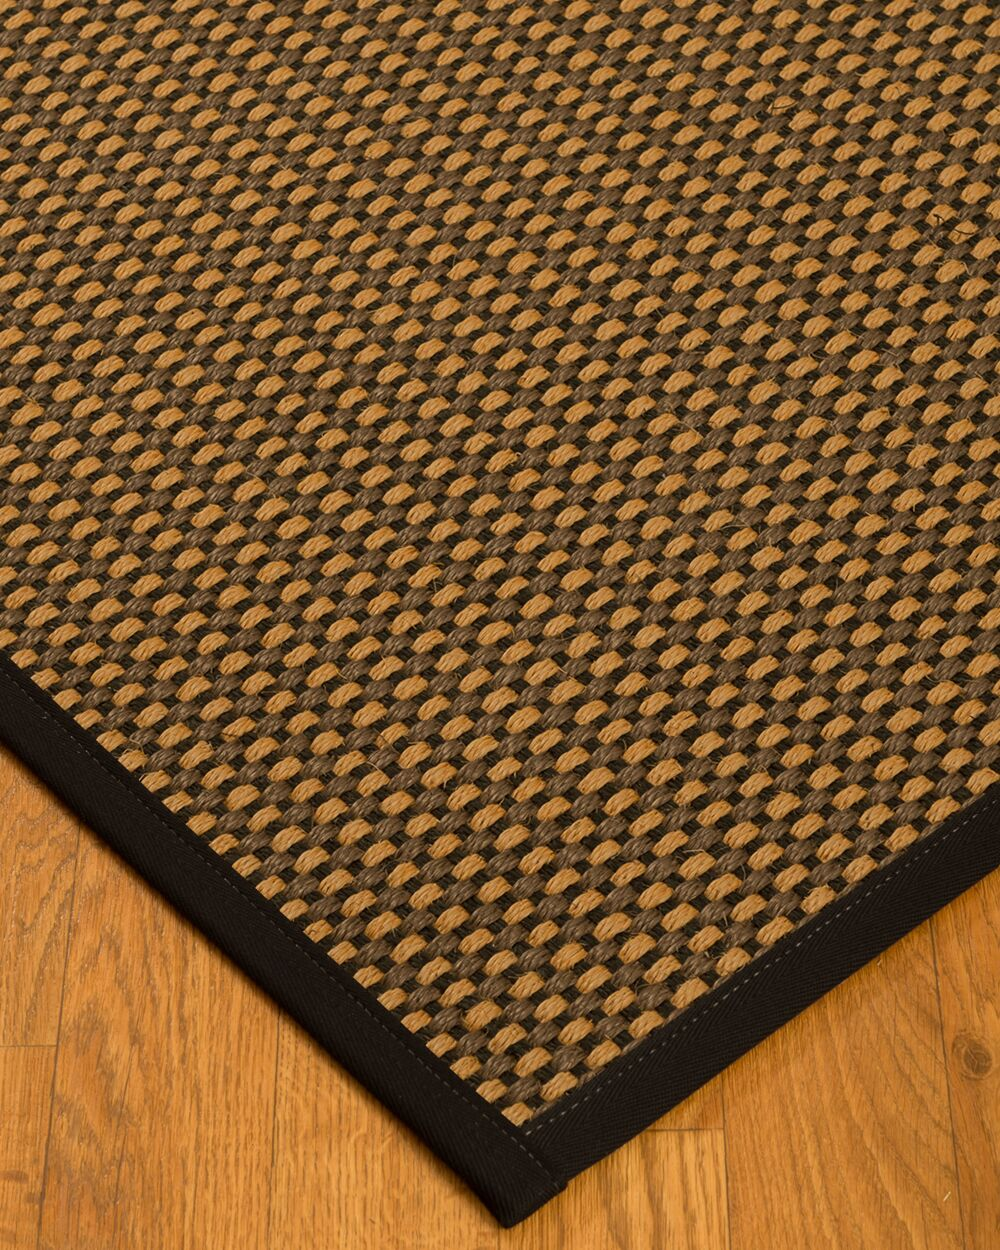 Avelina Handwoven Beige Area Rug Rug Size: Rectangle 6' x 9'